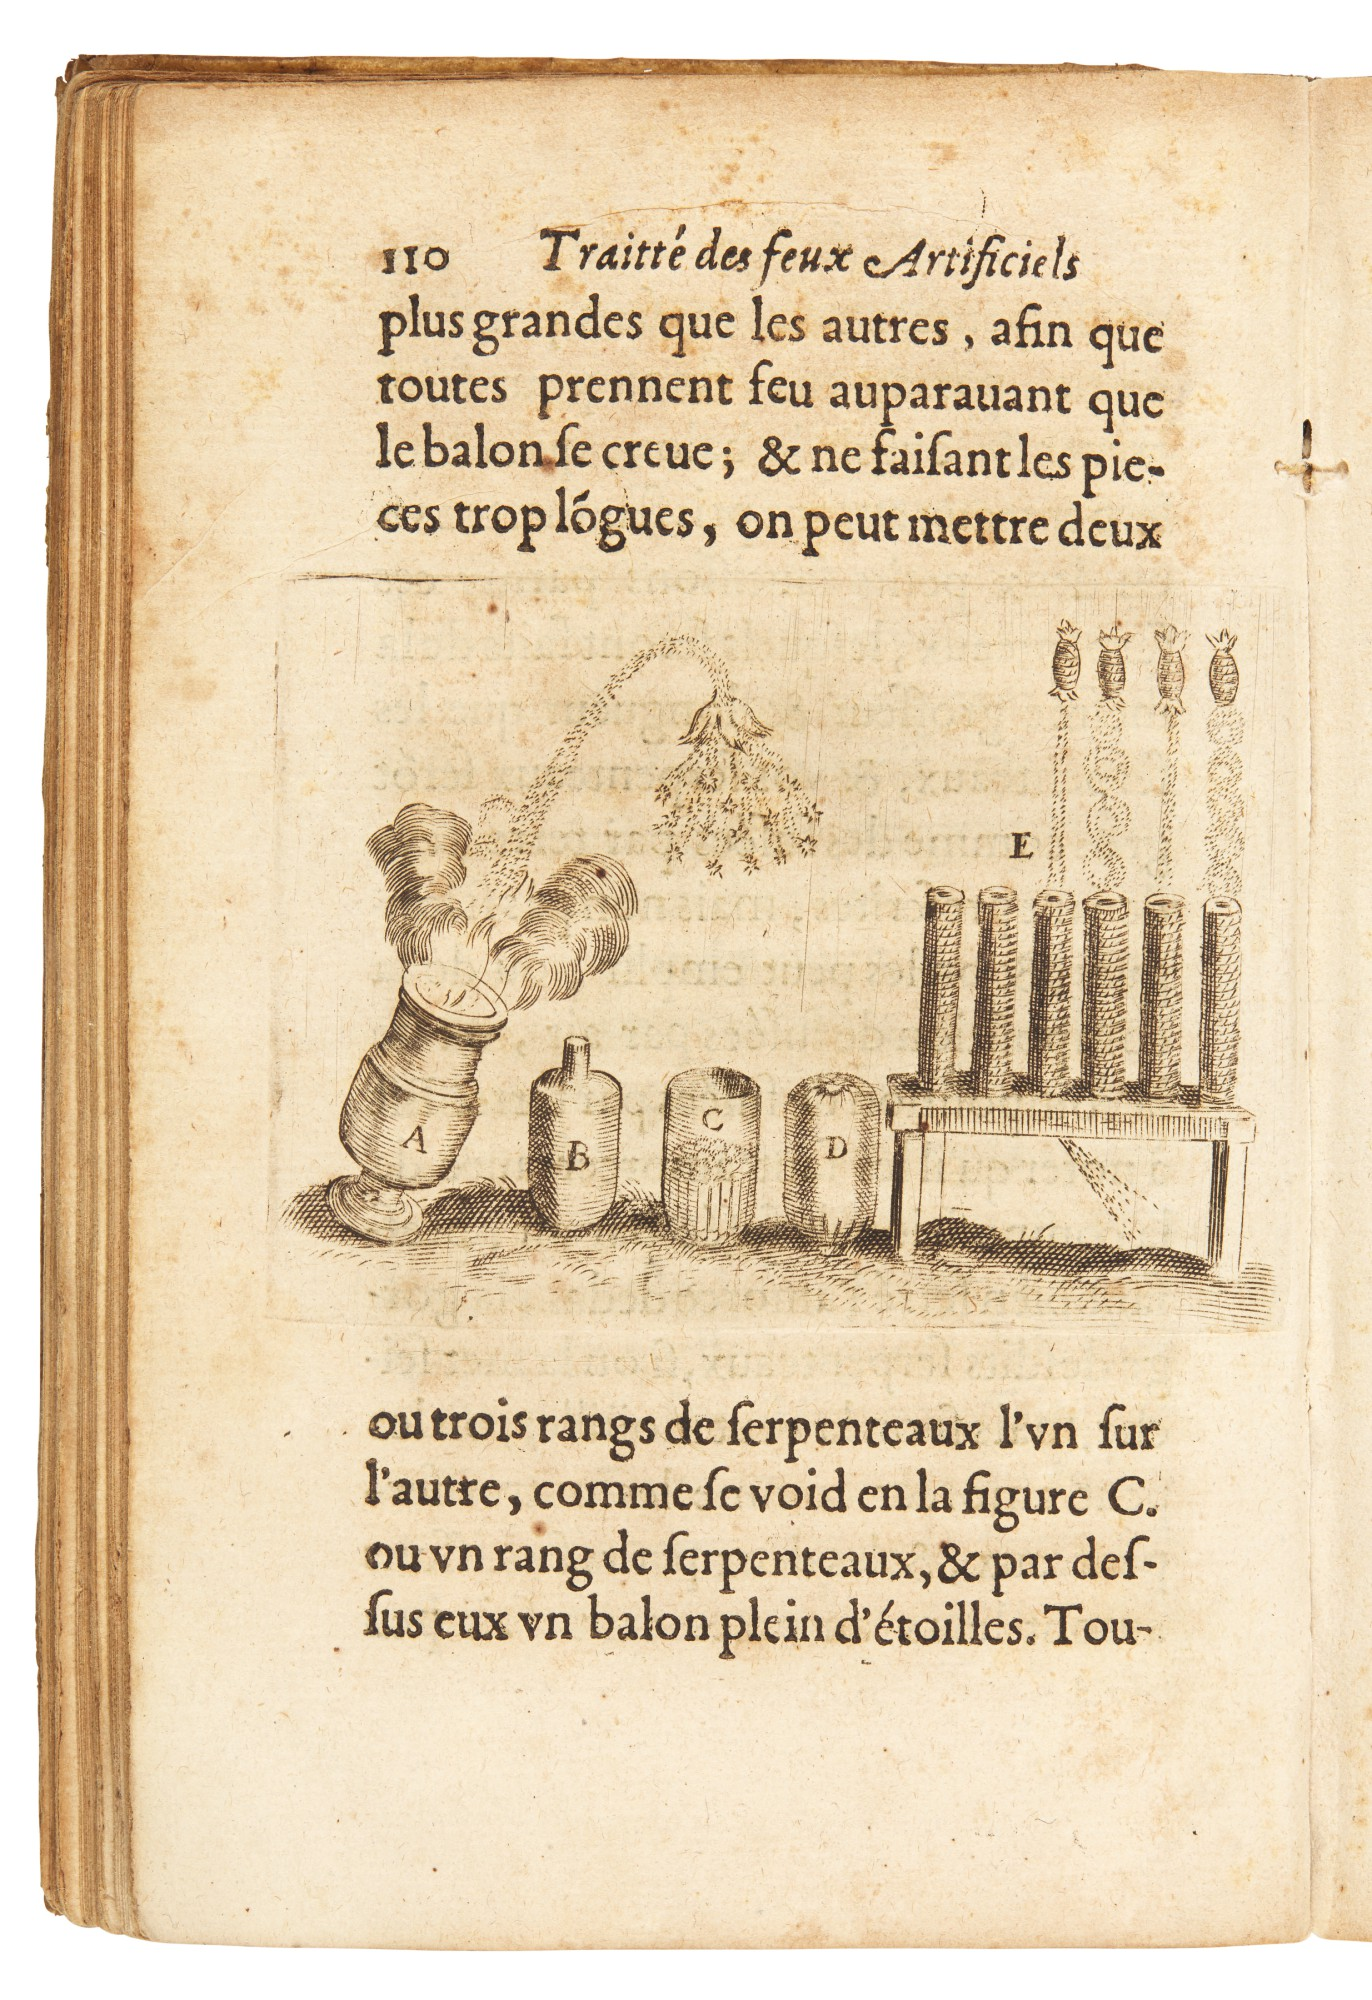 Artillery and fireworks, 2 works, by Rivault and Malthus, contemporary vellum